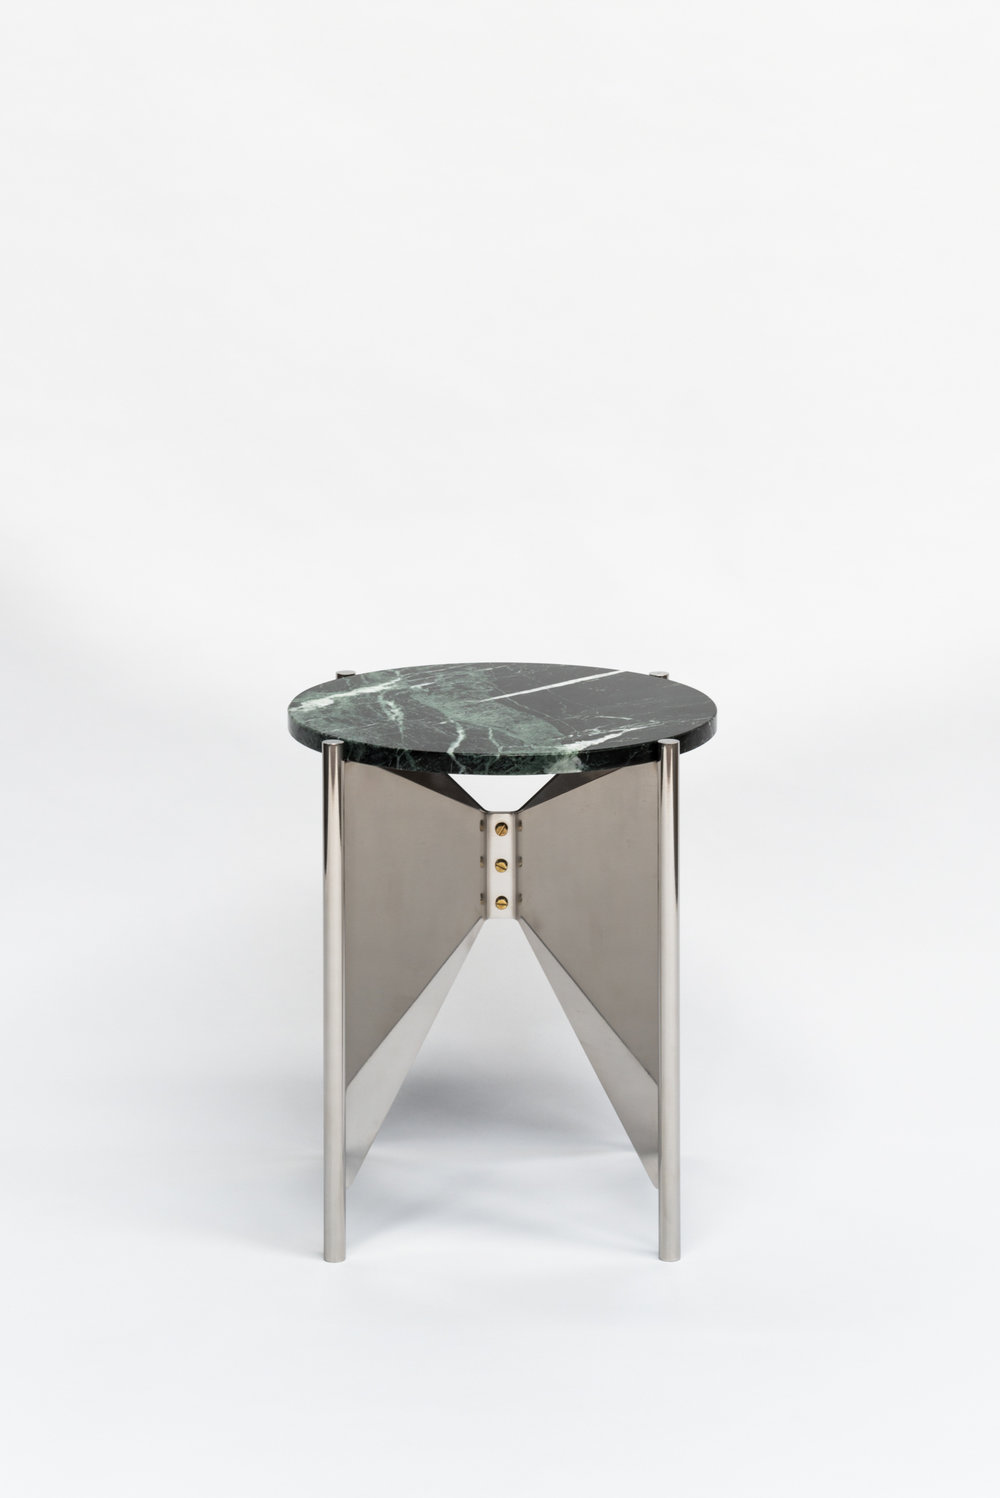 bermondsey side table -